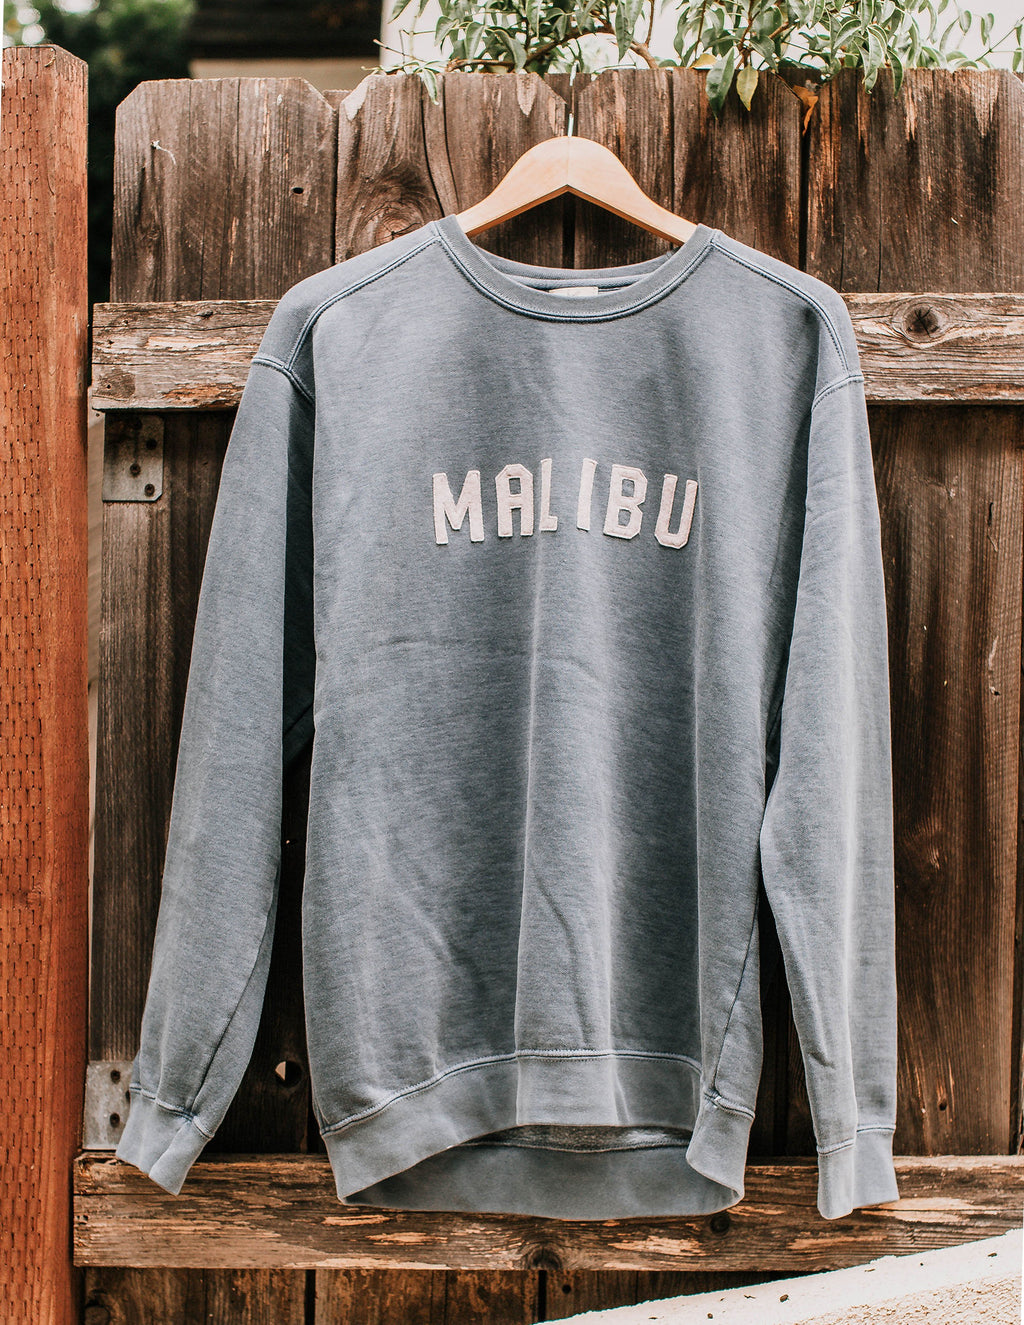 Malibu Sweatshirt - Magill Clothing